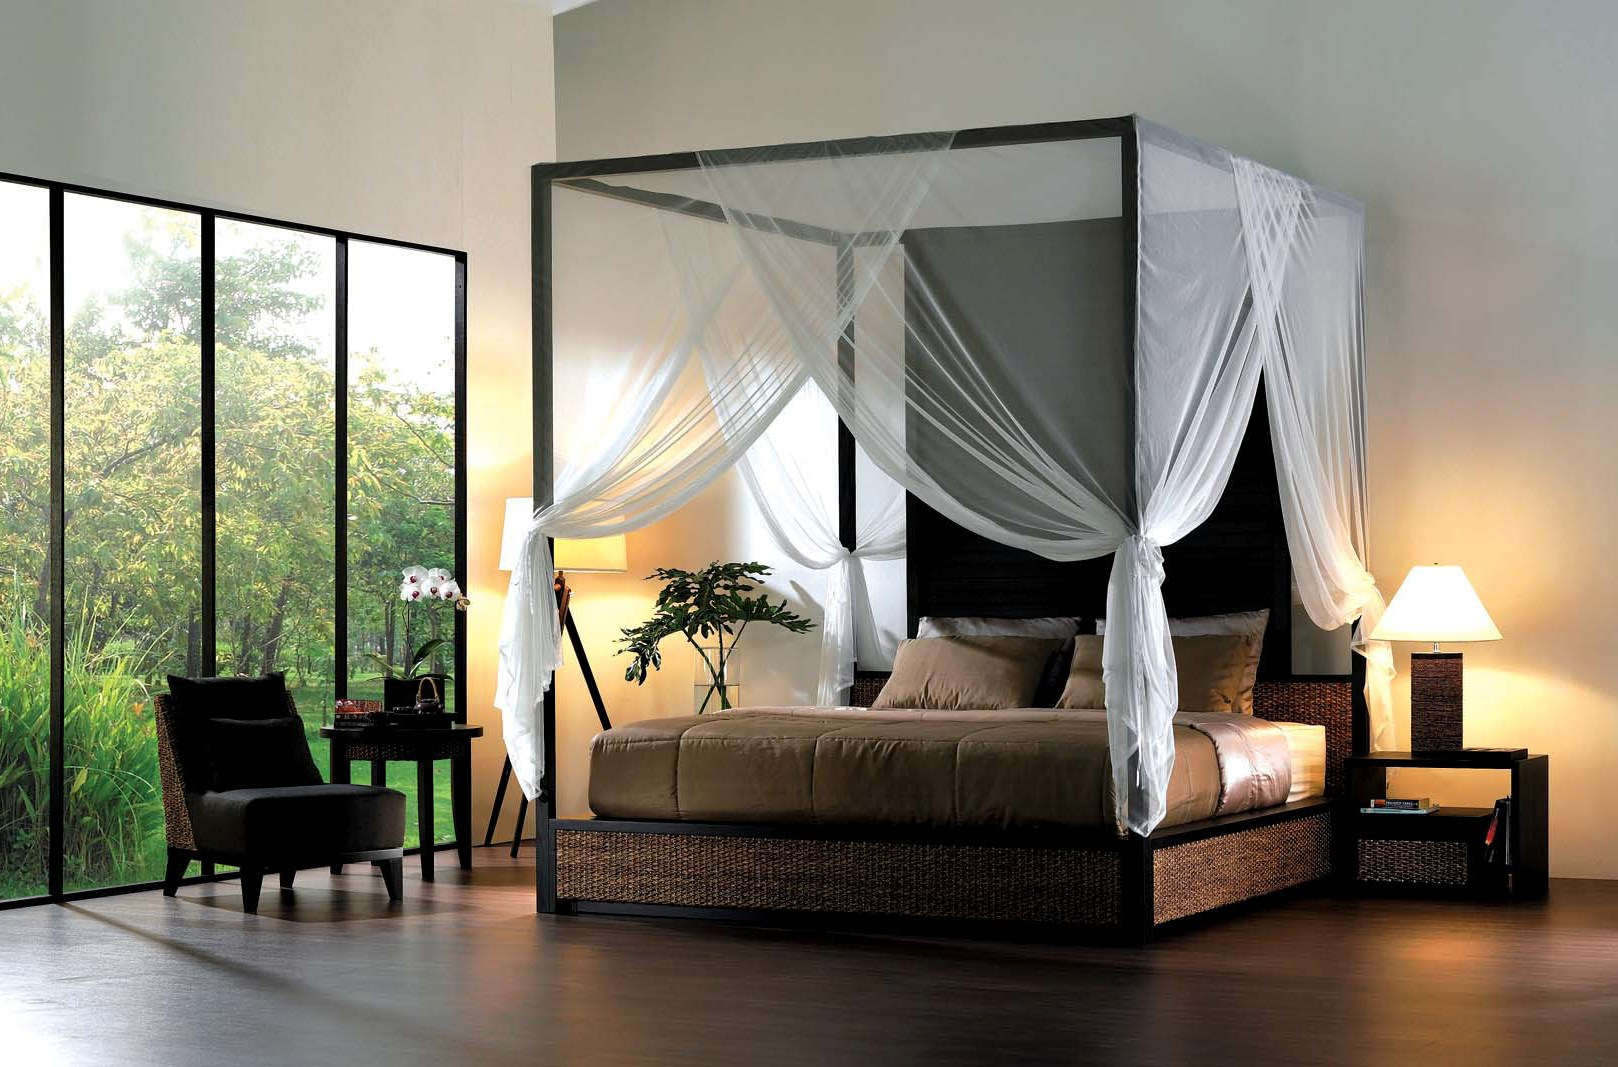 Enhance your fours poster bed with canopy bed curtains midcityeast - Ideas for canopy bed curtains ...